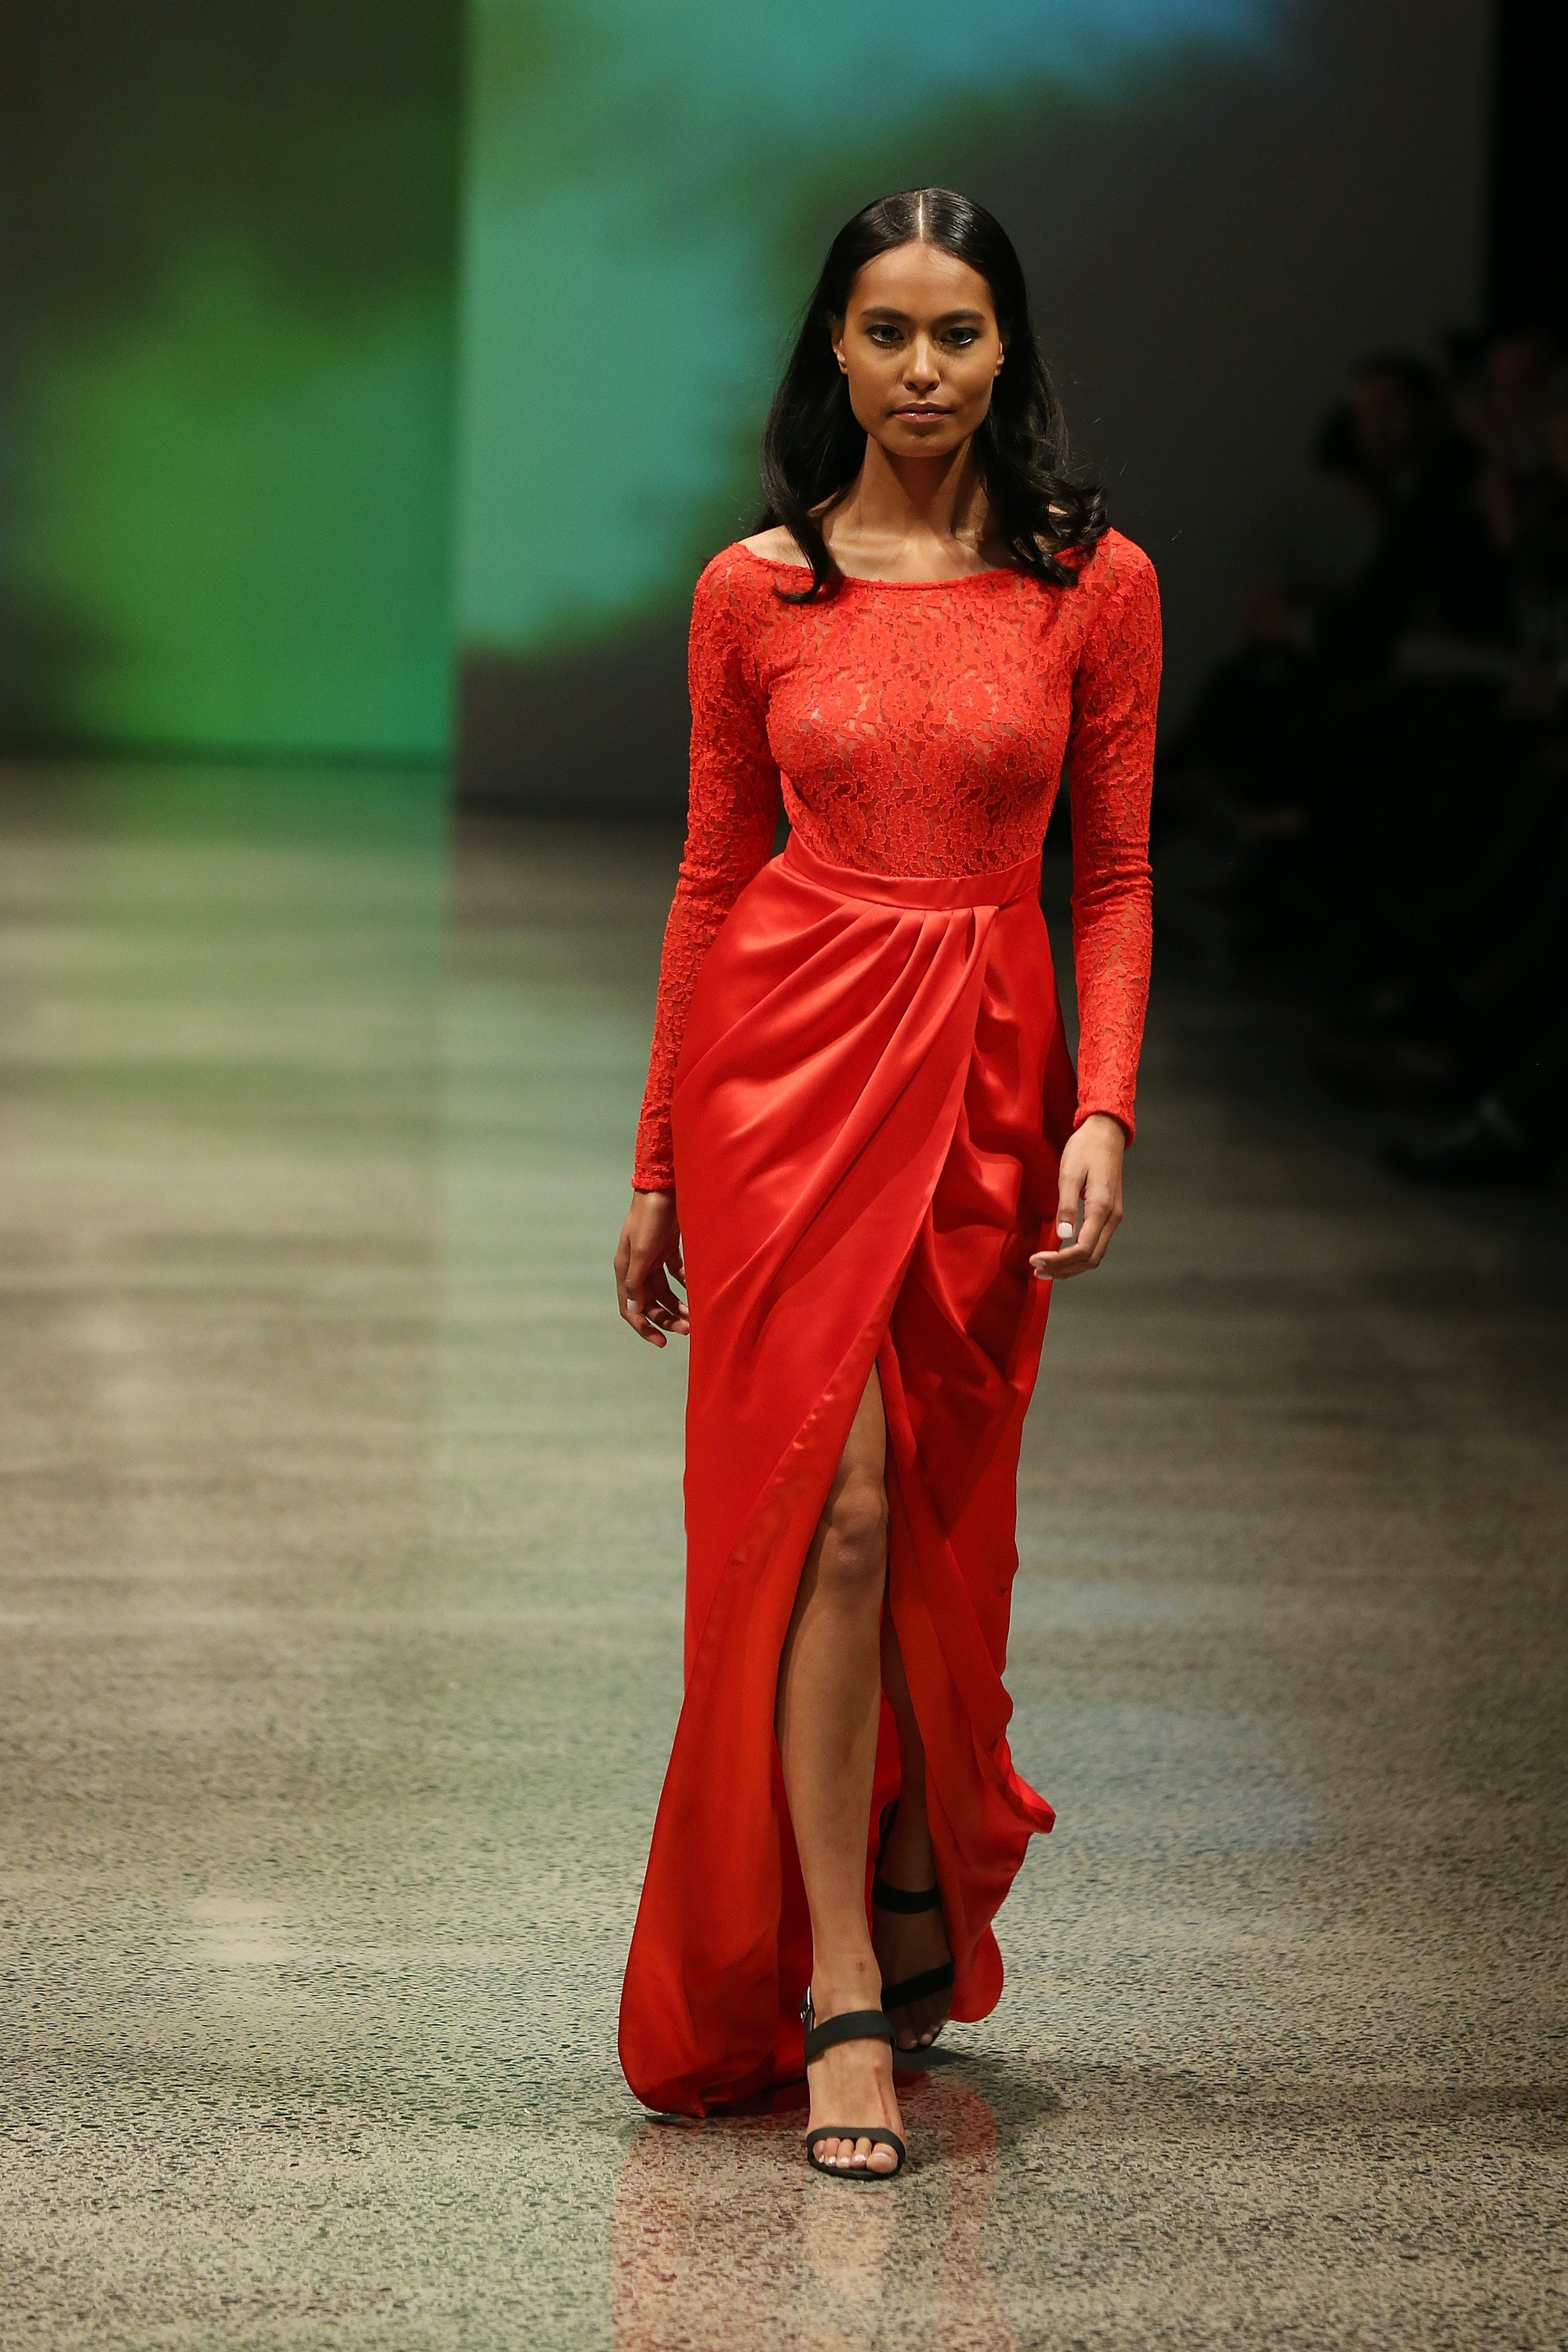 The Red Dress Effect: How Marketers Have